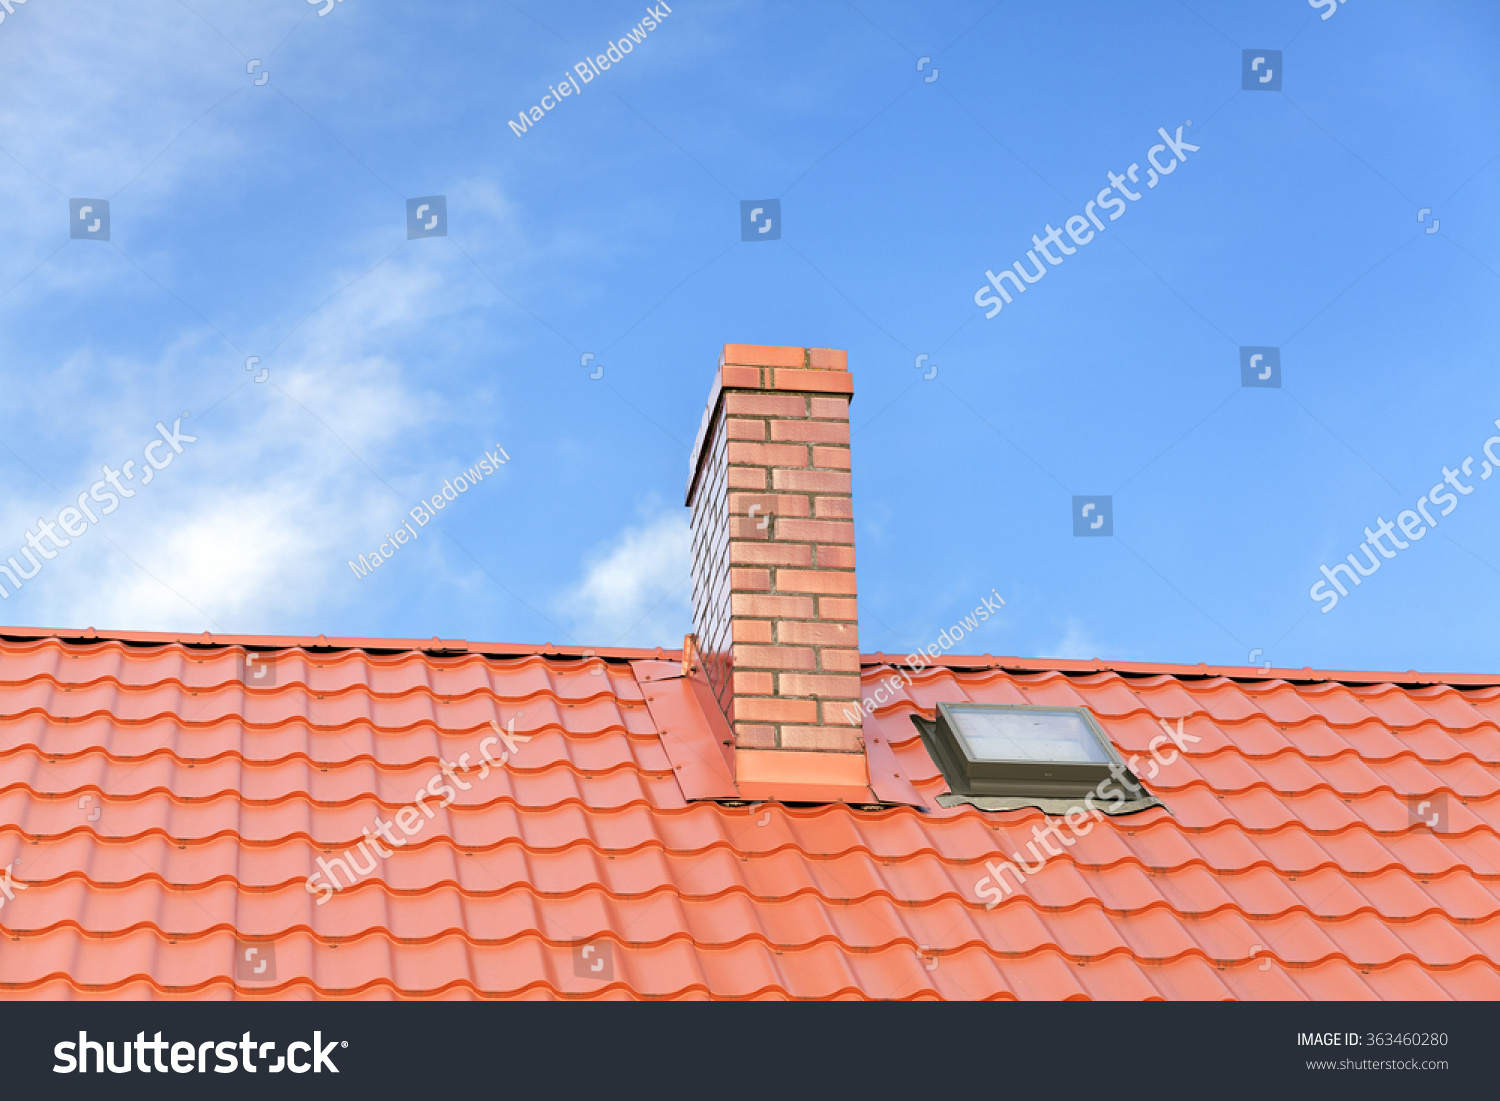 Roof ceramic tile chimney against blue stock photo 363460280 roof with ceramic tile chimney against blue sky space for text dailygadgetfo Choice Image